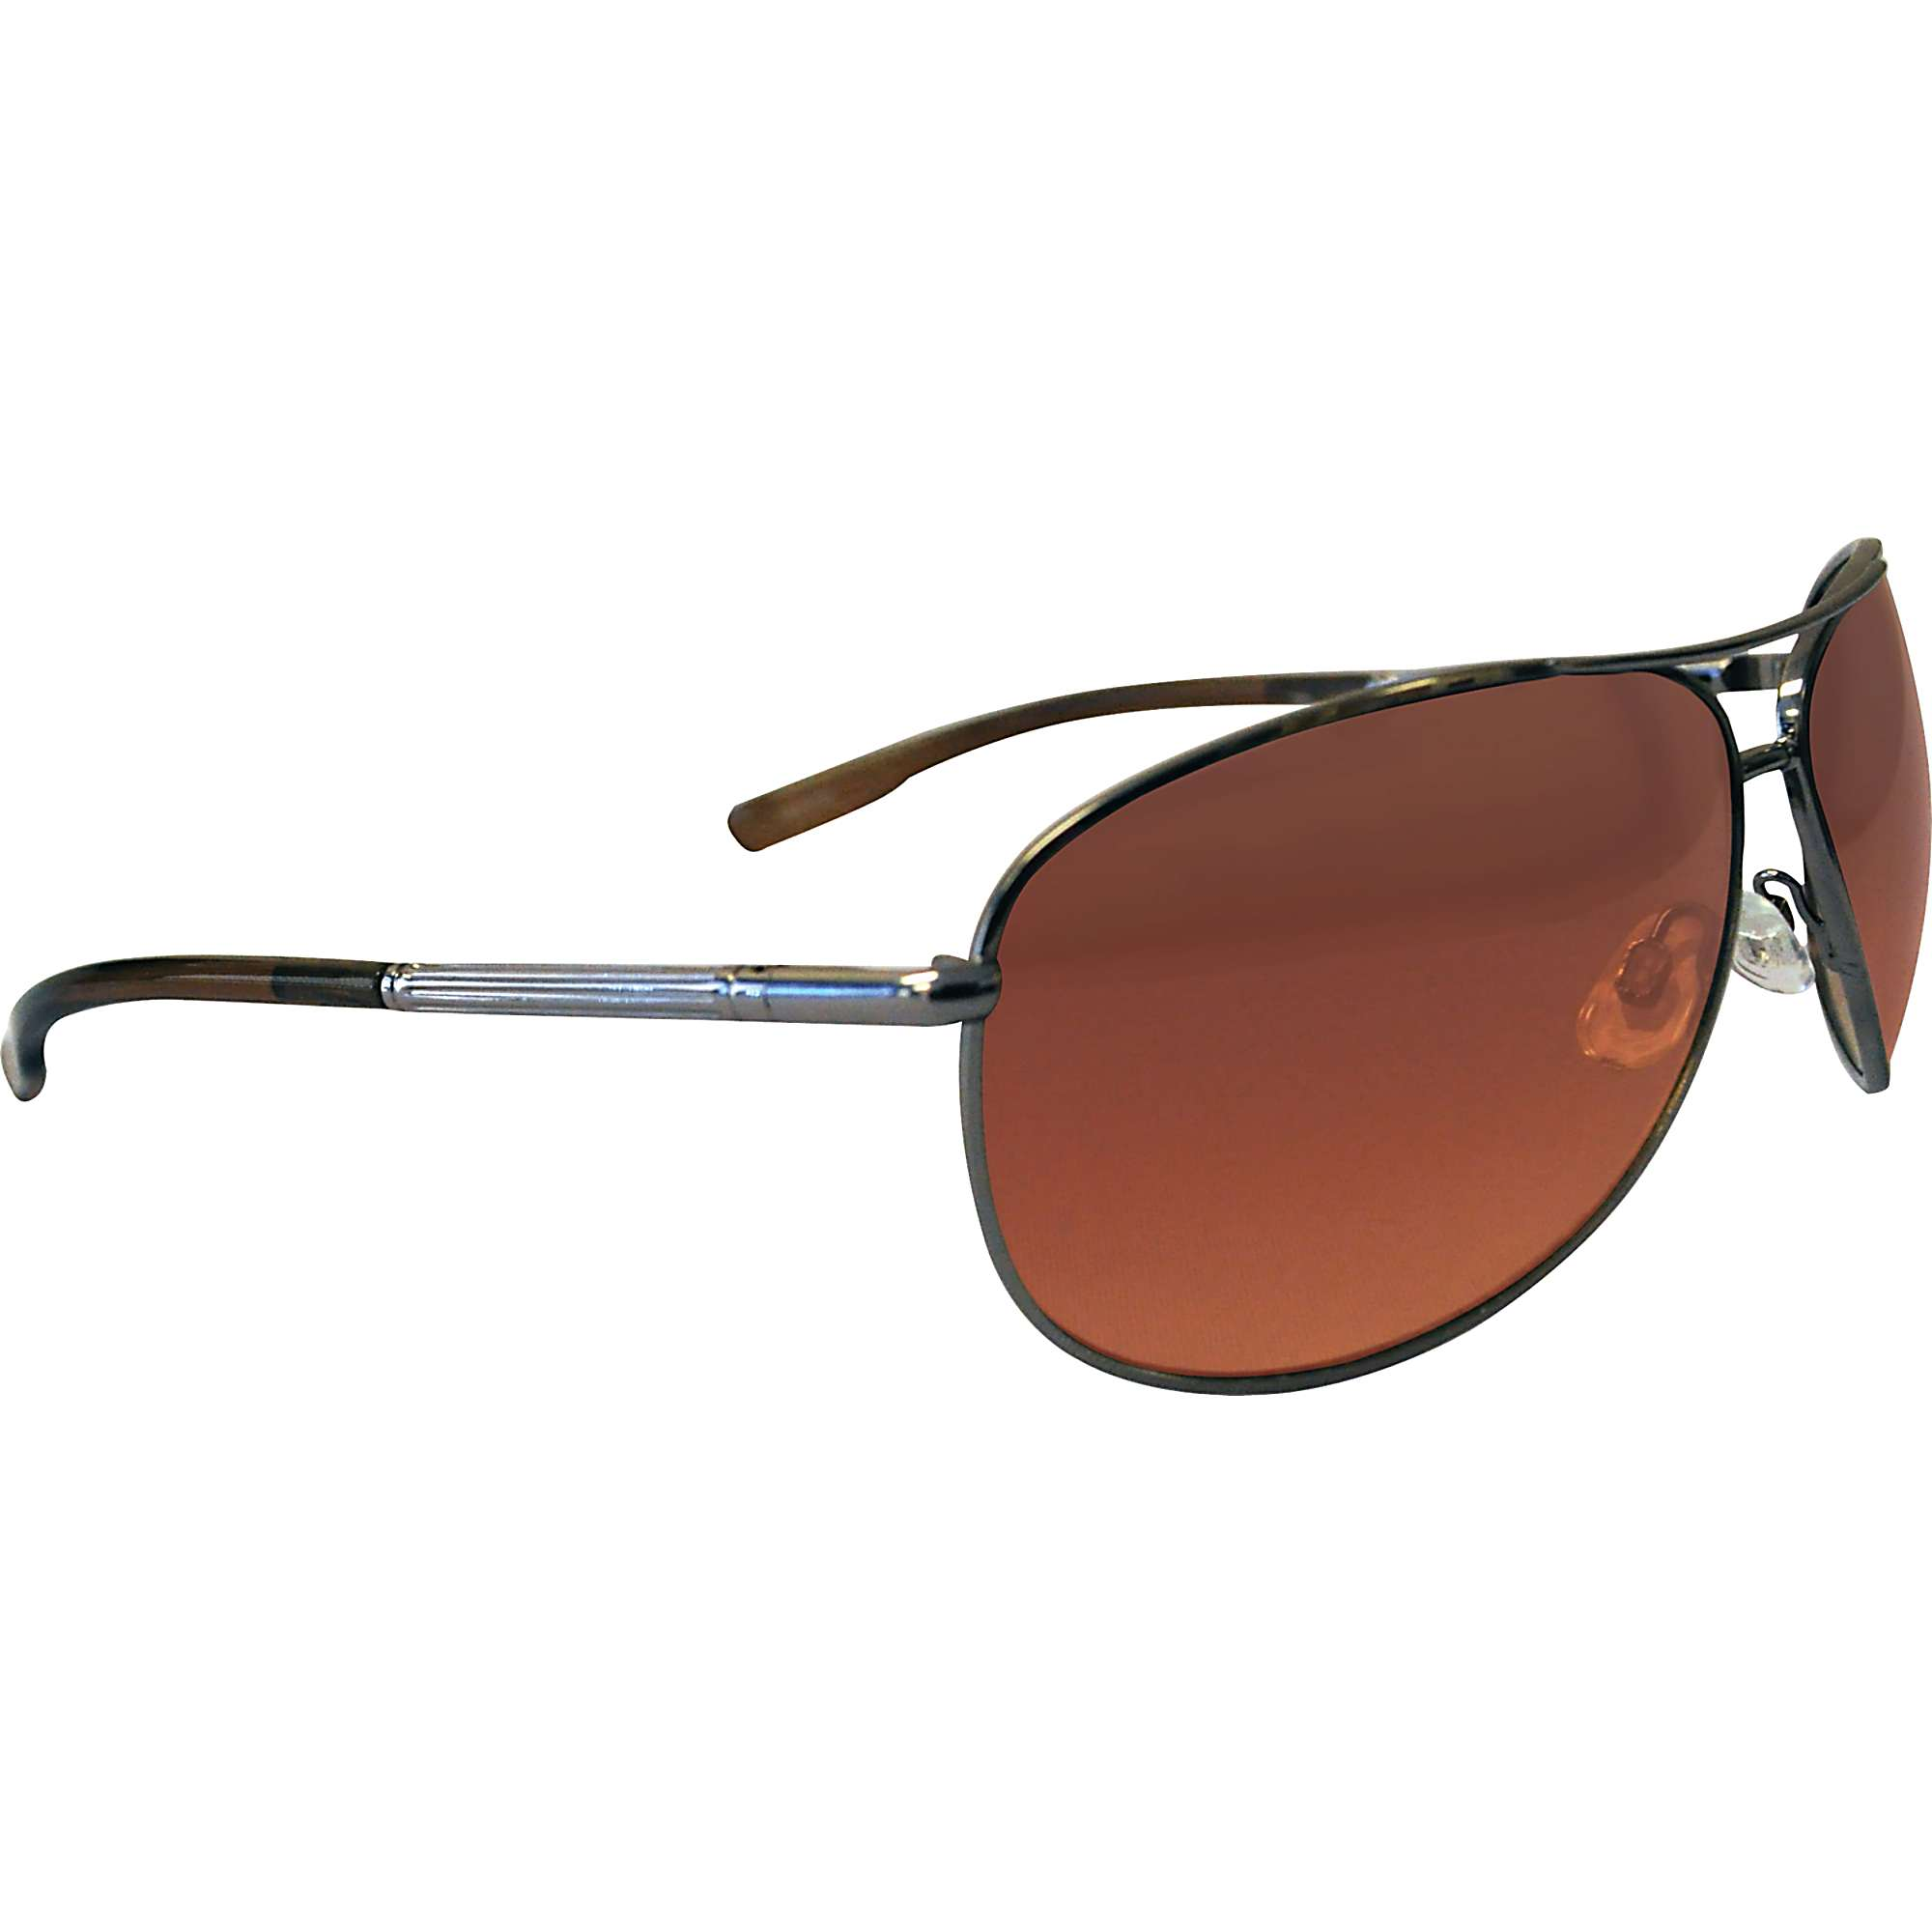 Maxx Hd Women's Nomad Sunglasses